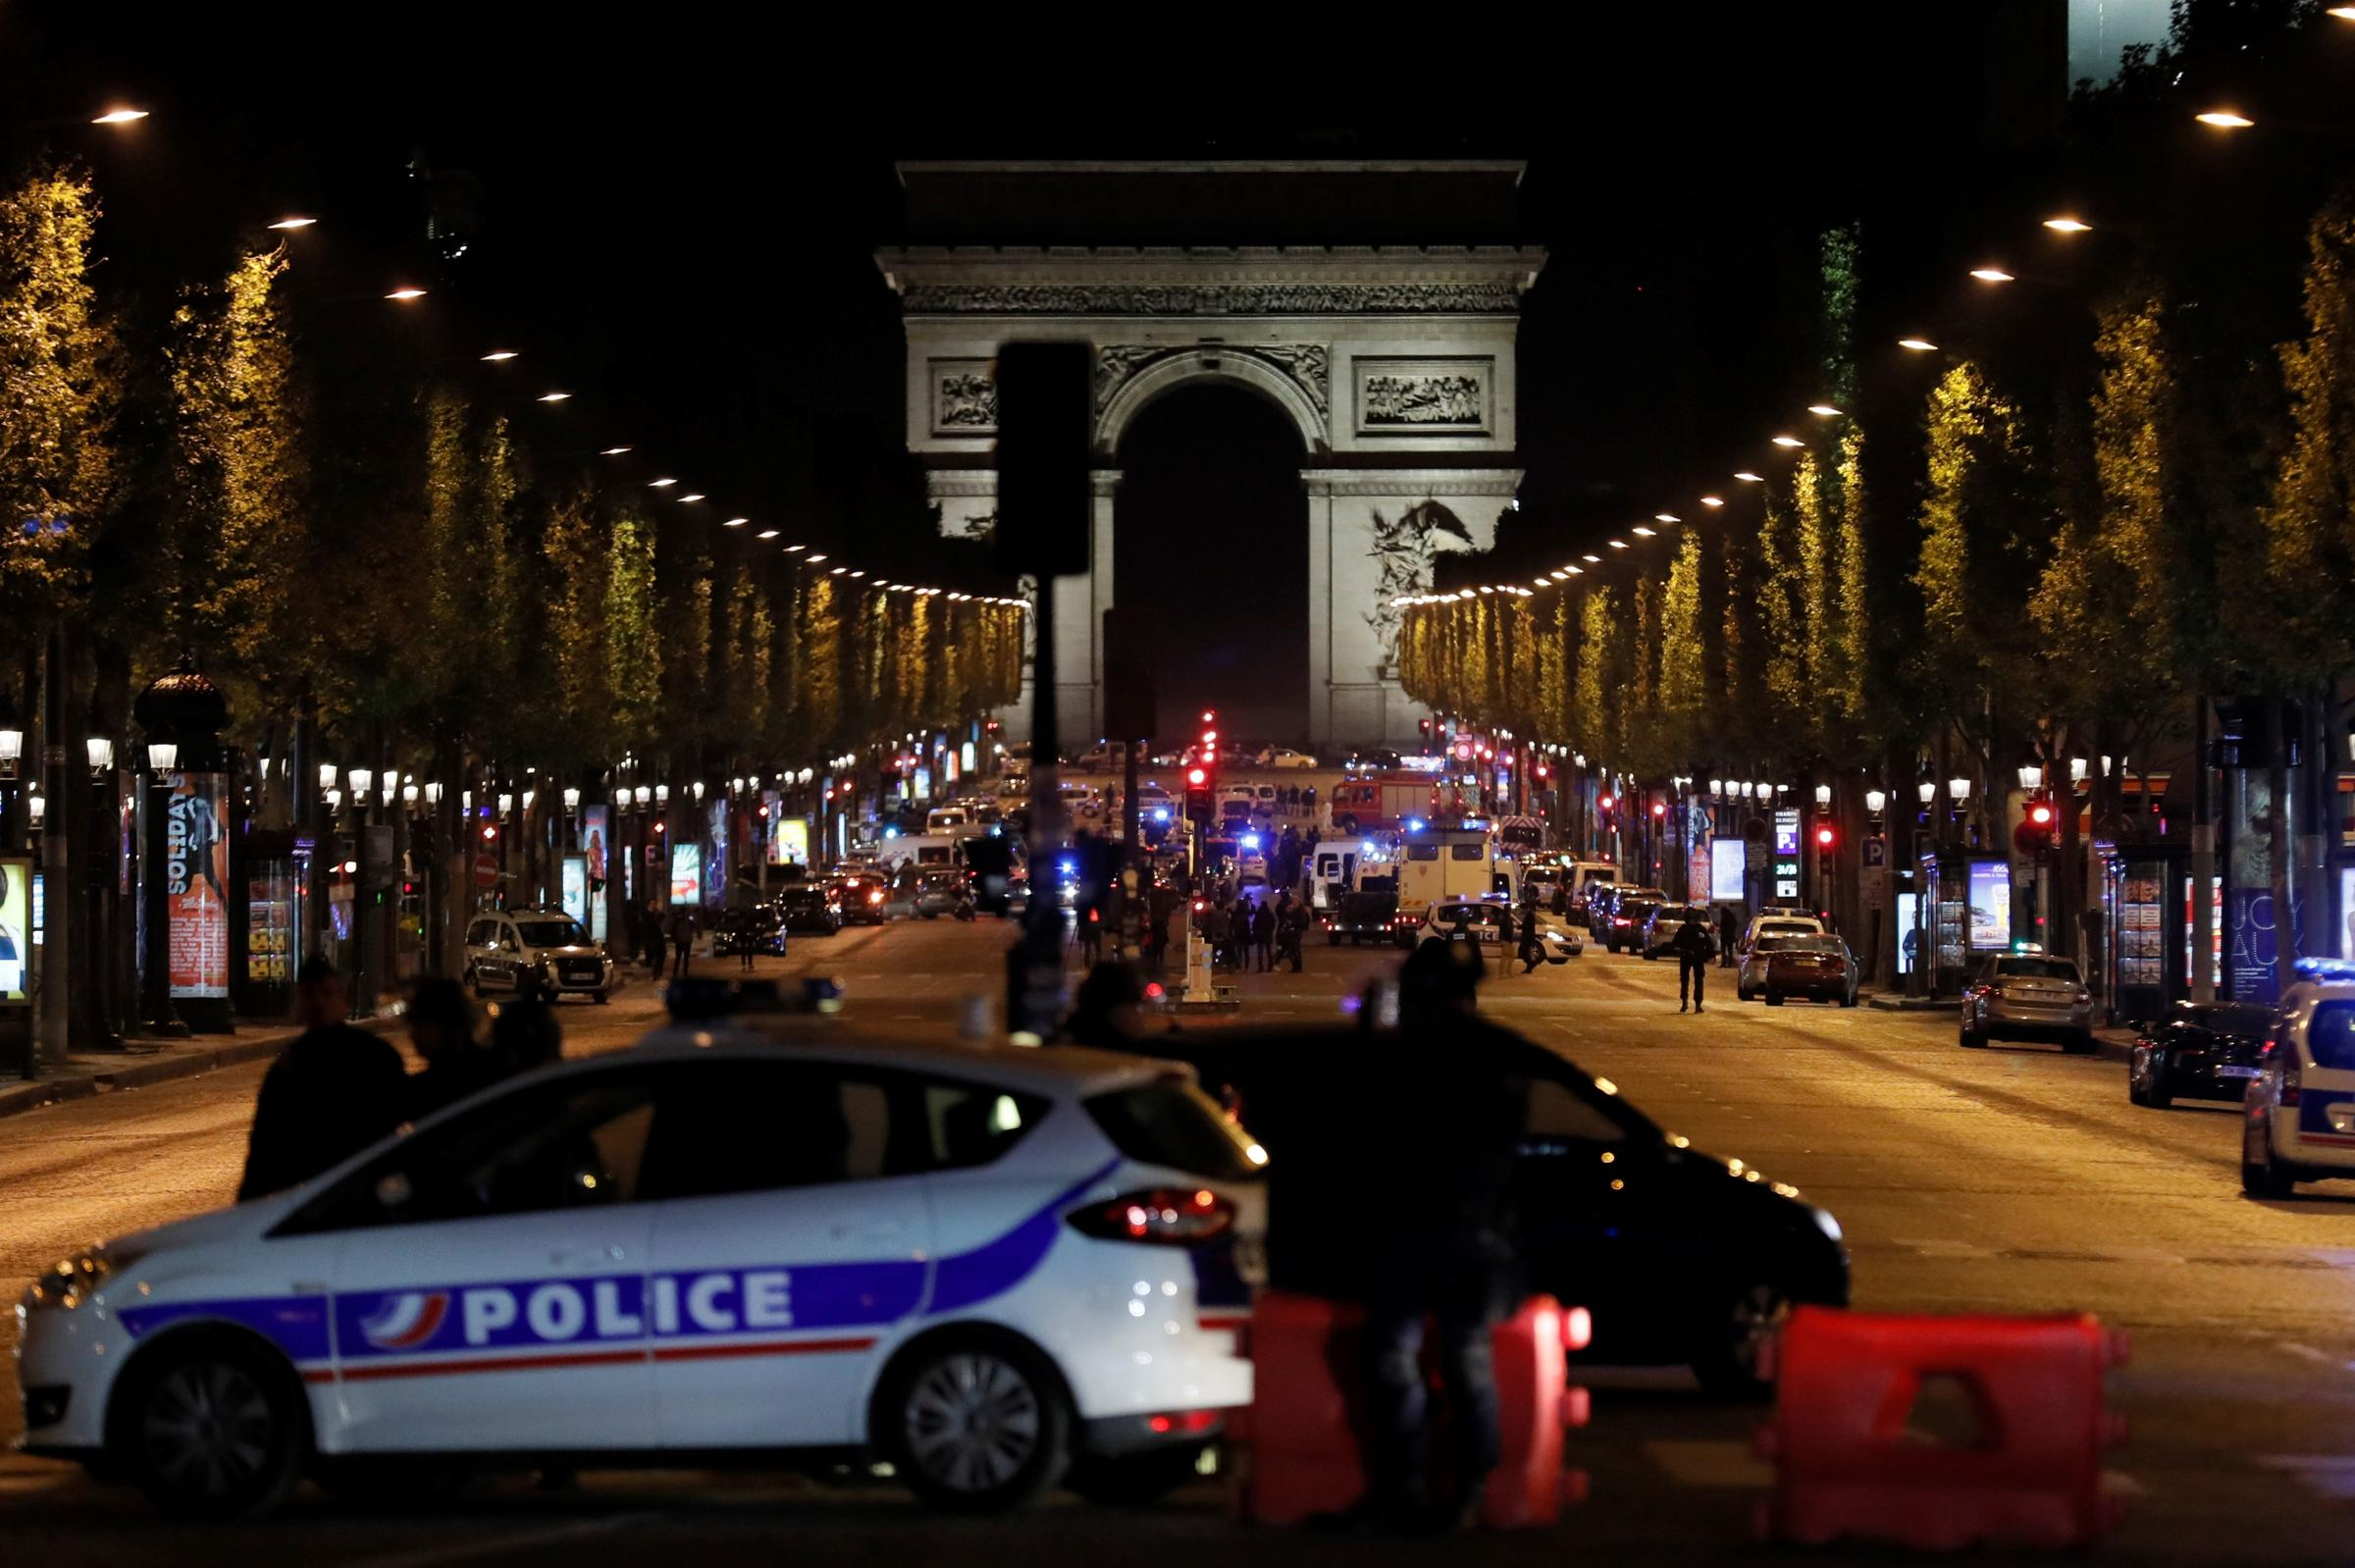 Security forces will be vigilant during election after Paris shooting - French president